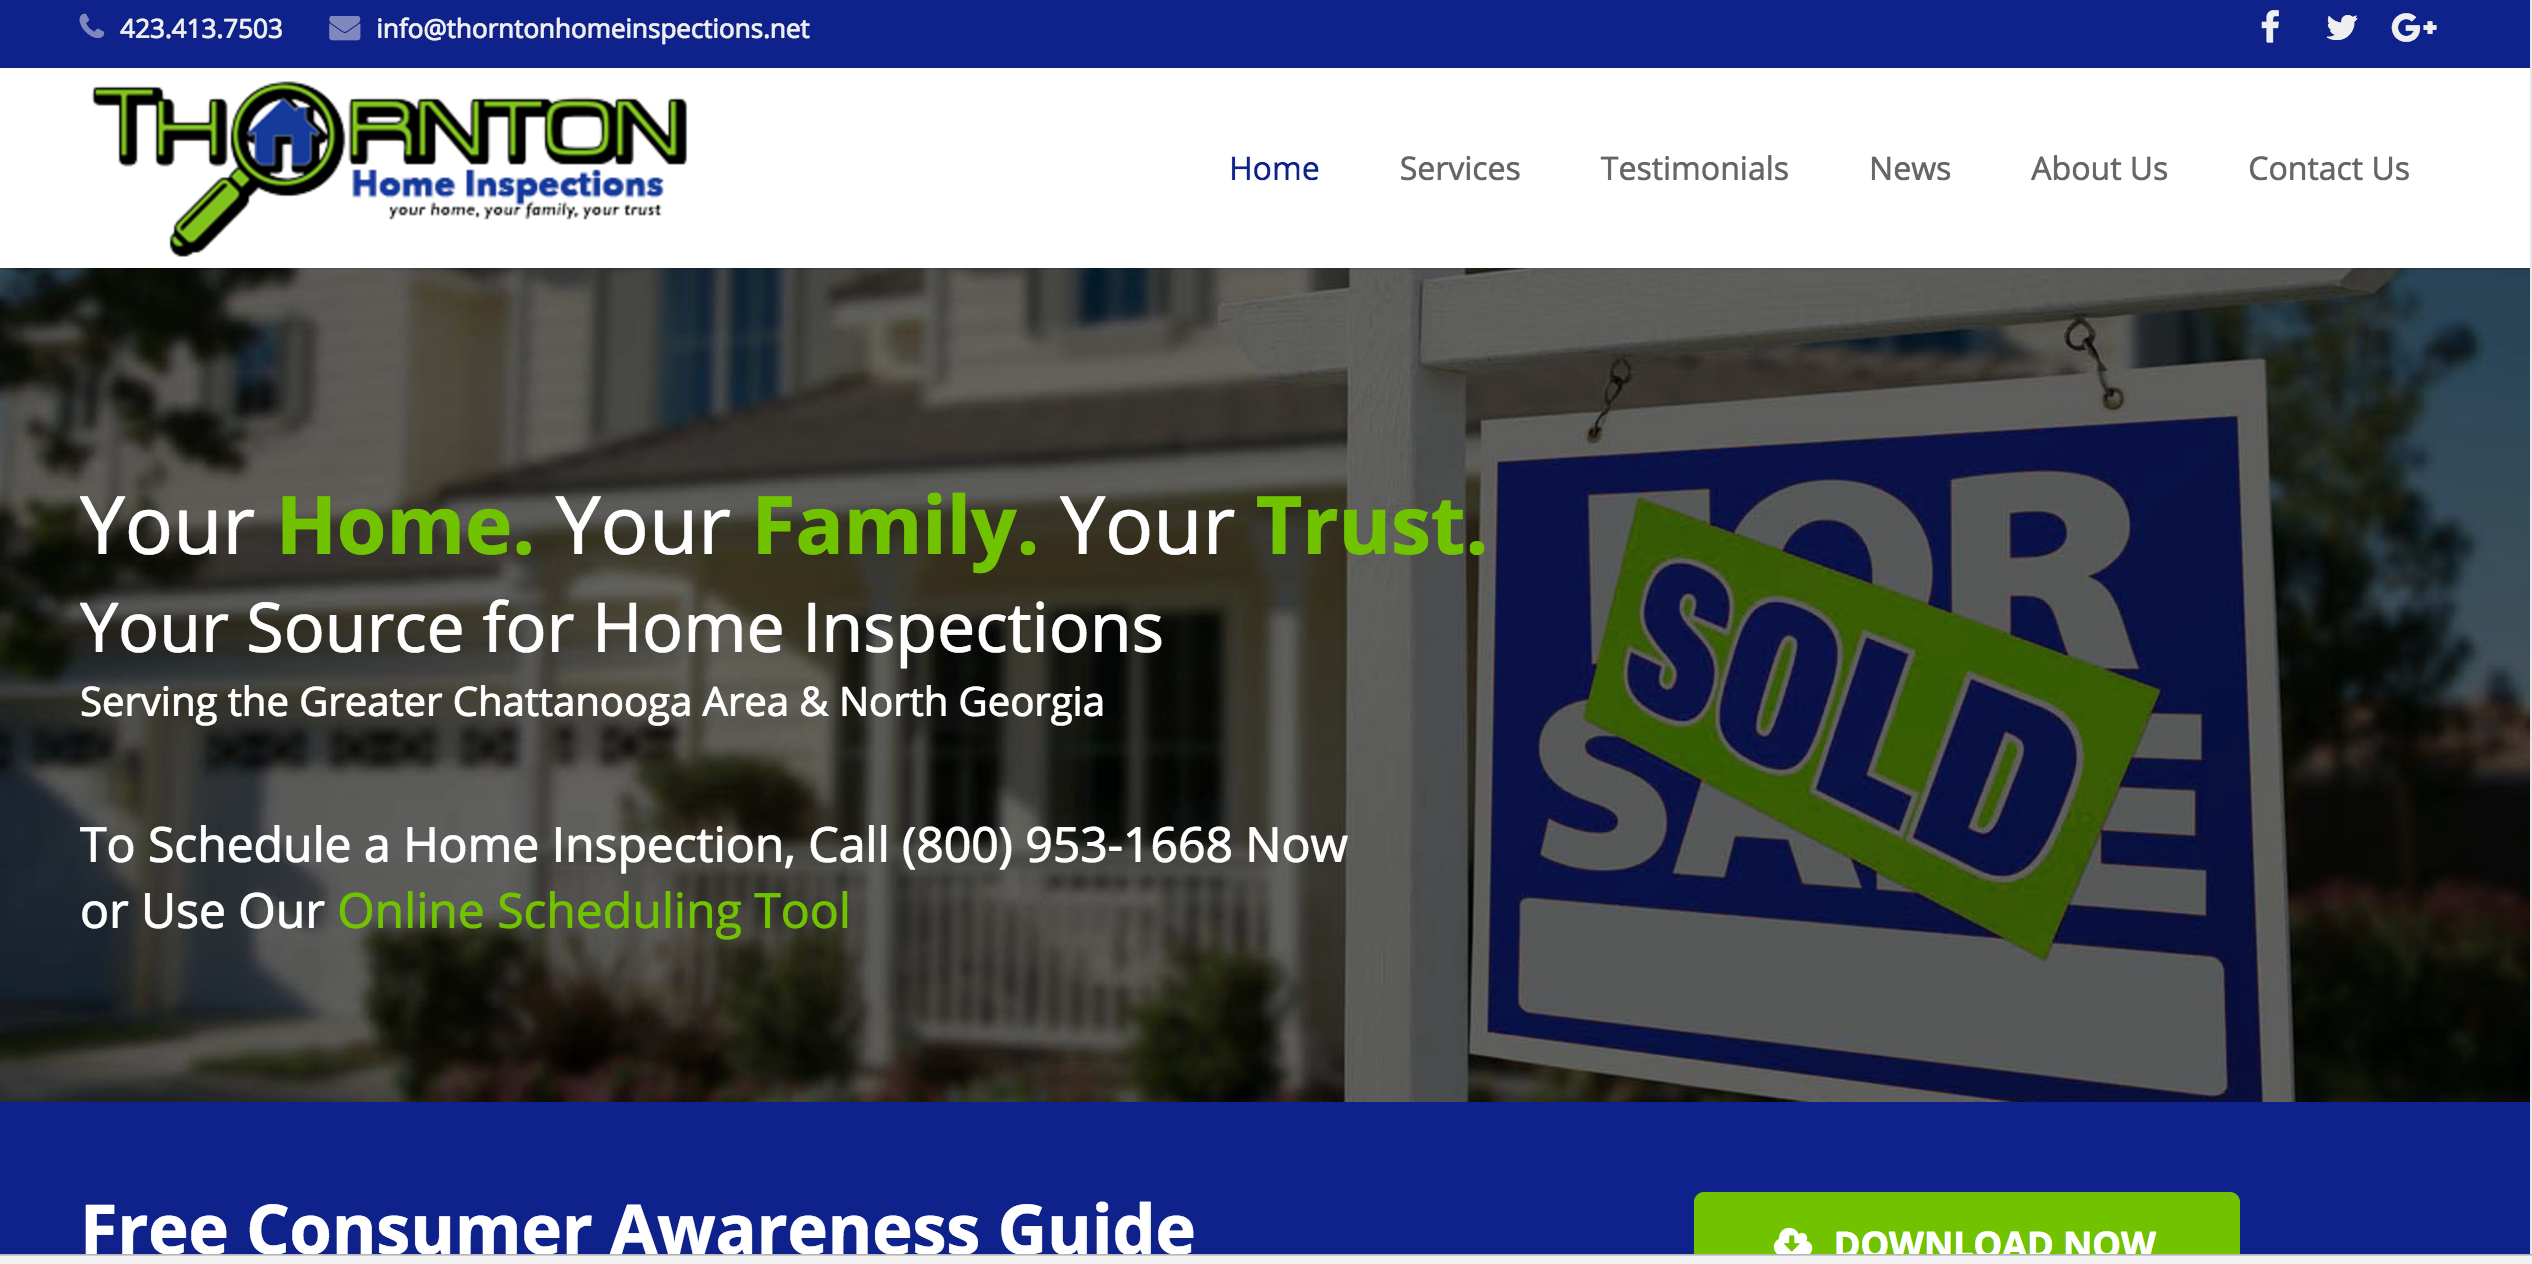 Thornton Home Inspections